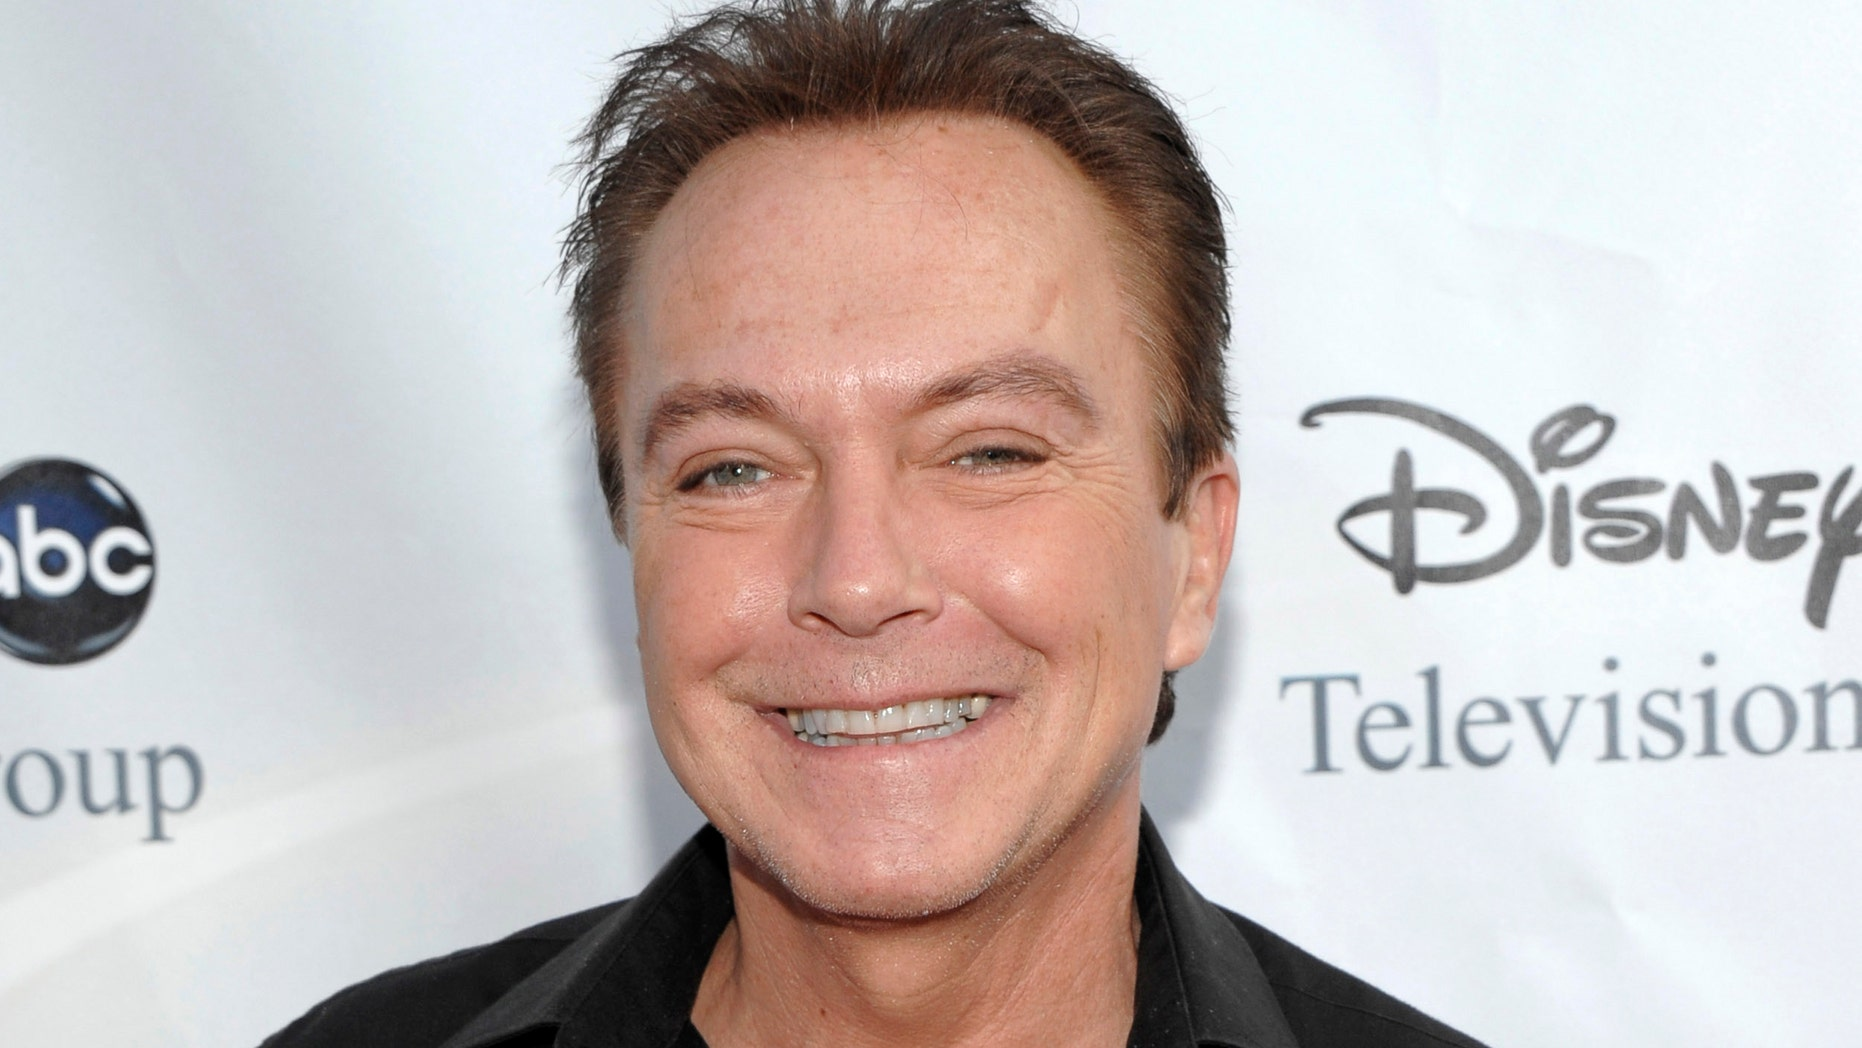 Aug. 8, 2009. David Cassidy at the ABC Disney Summer press tour party in Pasadena, Calif.